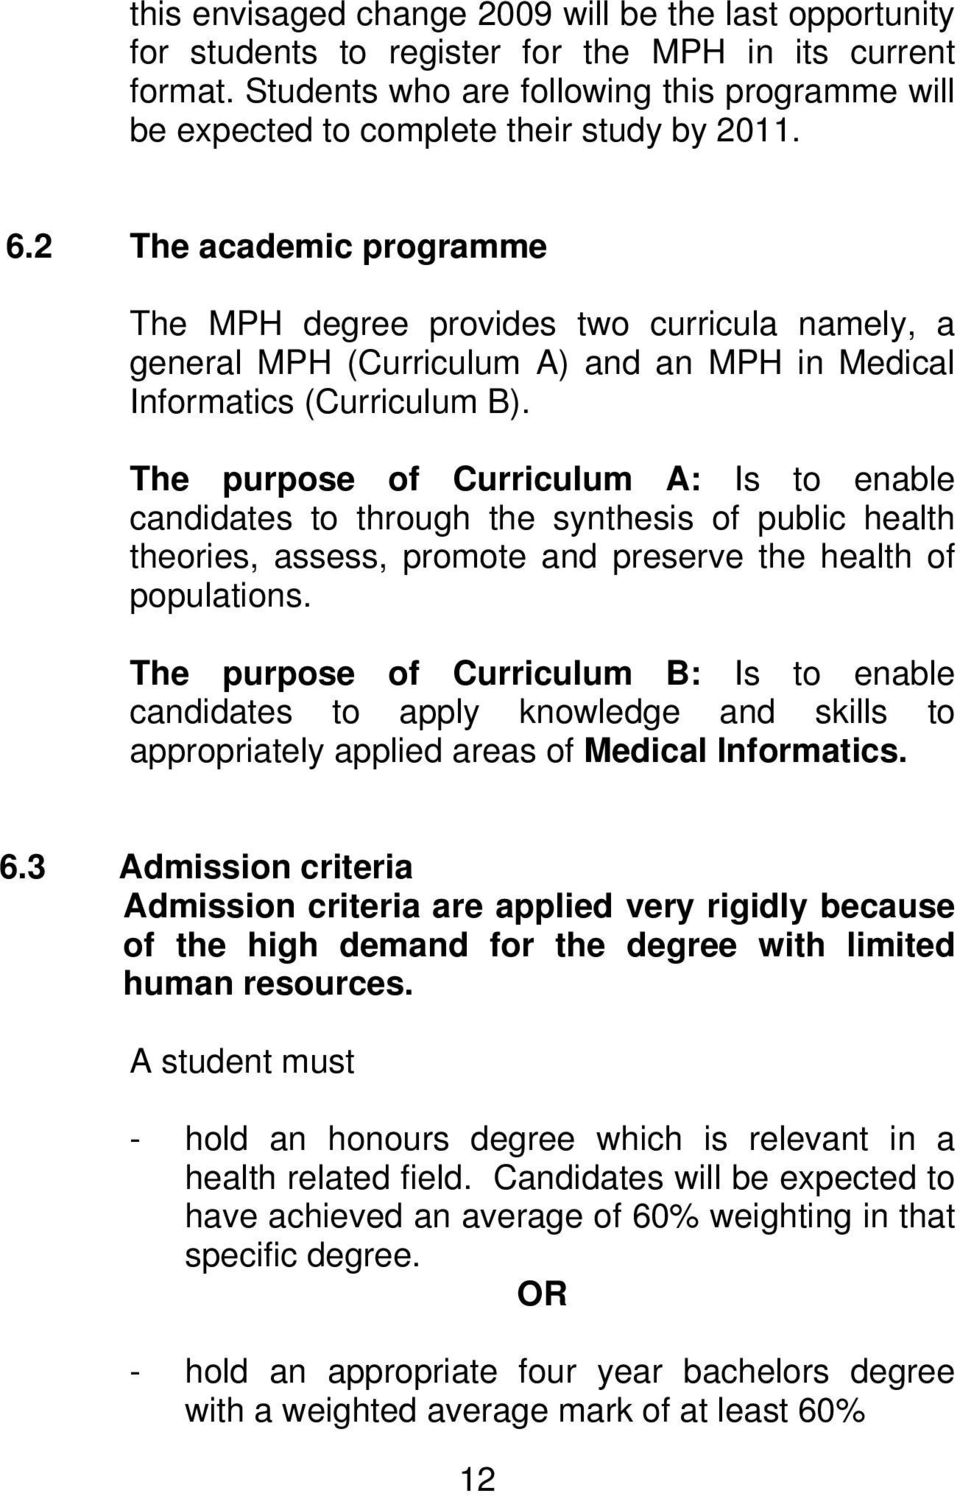 2 The academic programme The MPH degree provides two curricula namely, a general MPH (Curriculum A) and an MPH in Medical Informatics (Curriculum B).